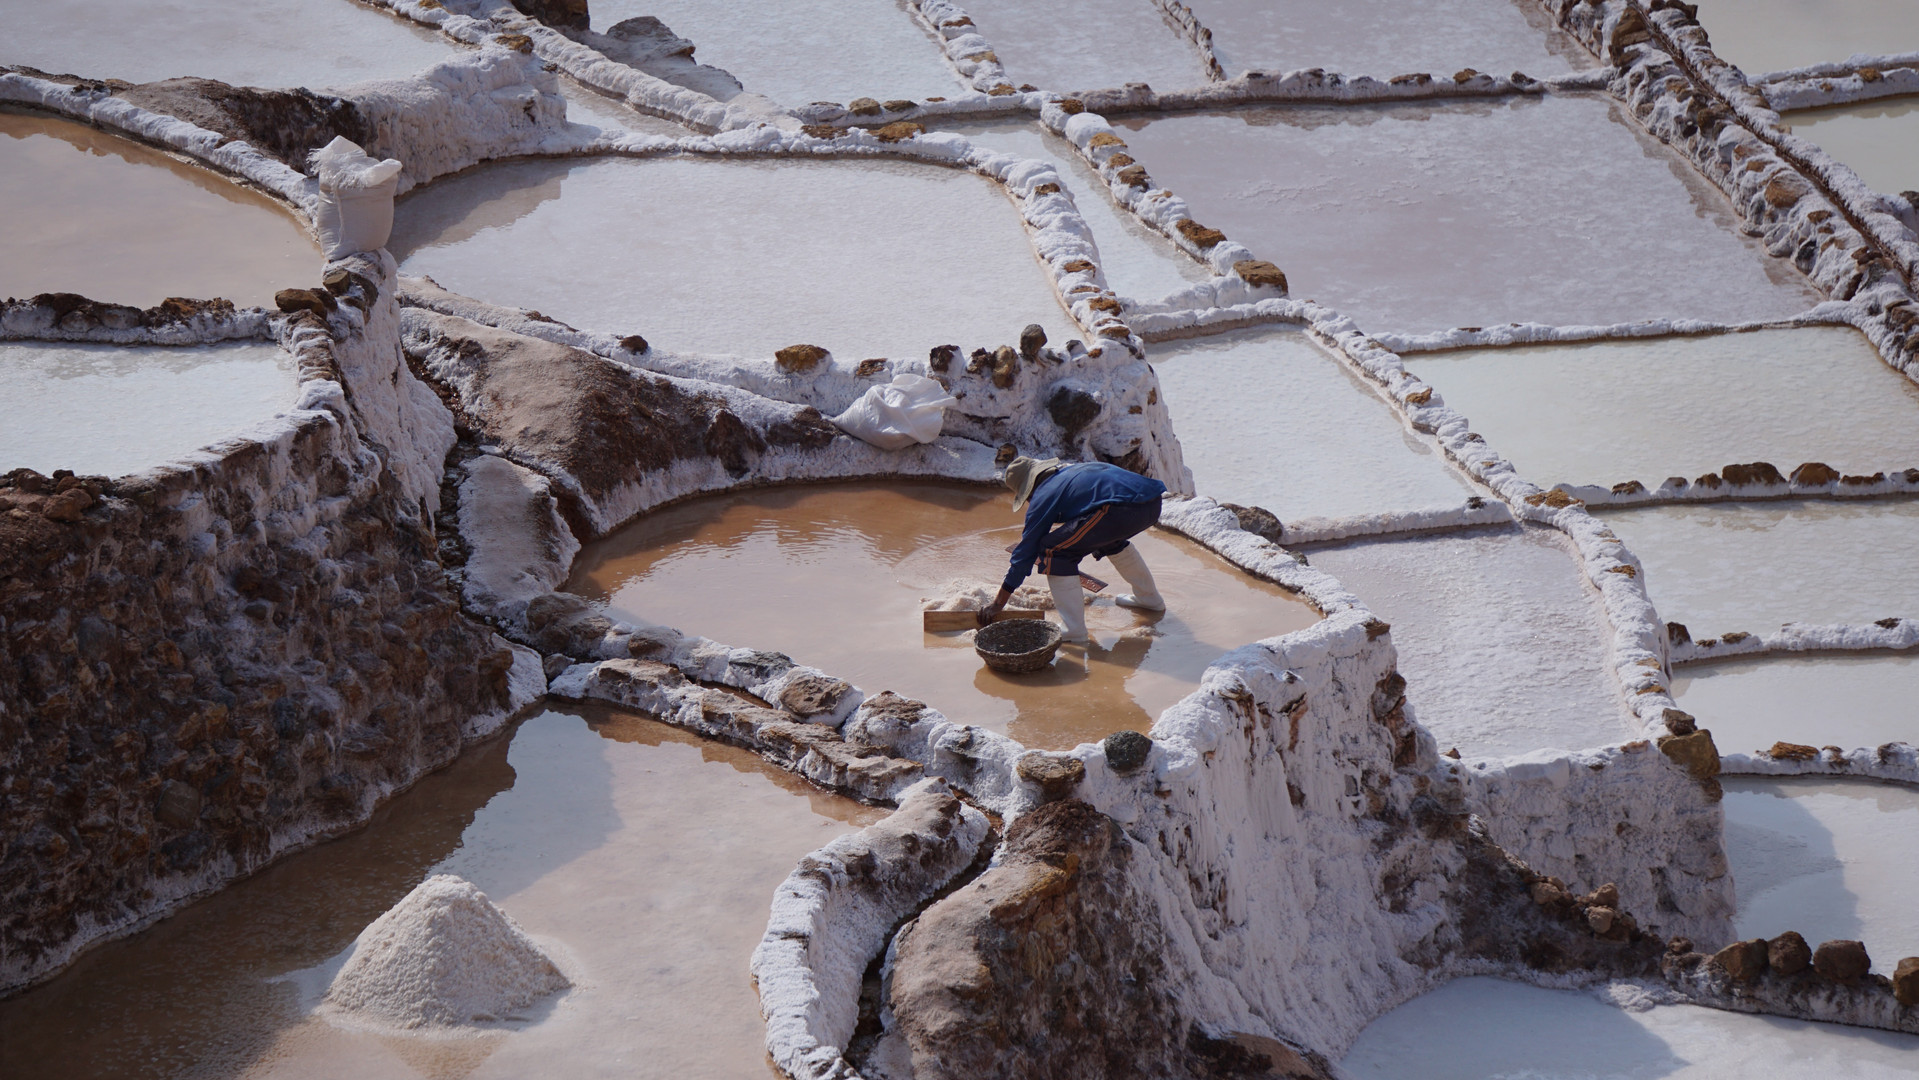 Salt collection from the Maras salt pools